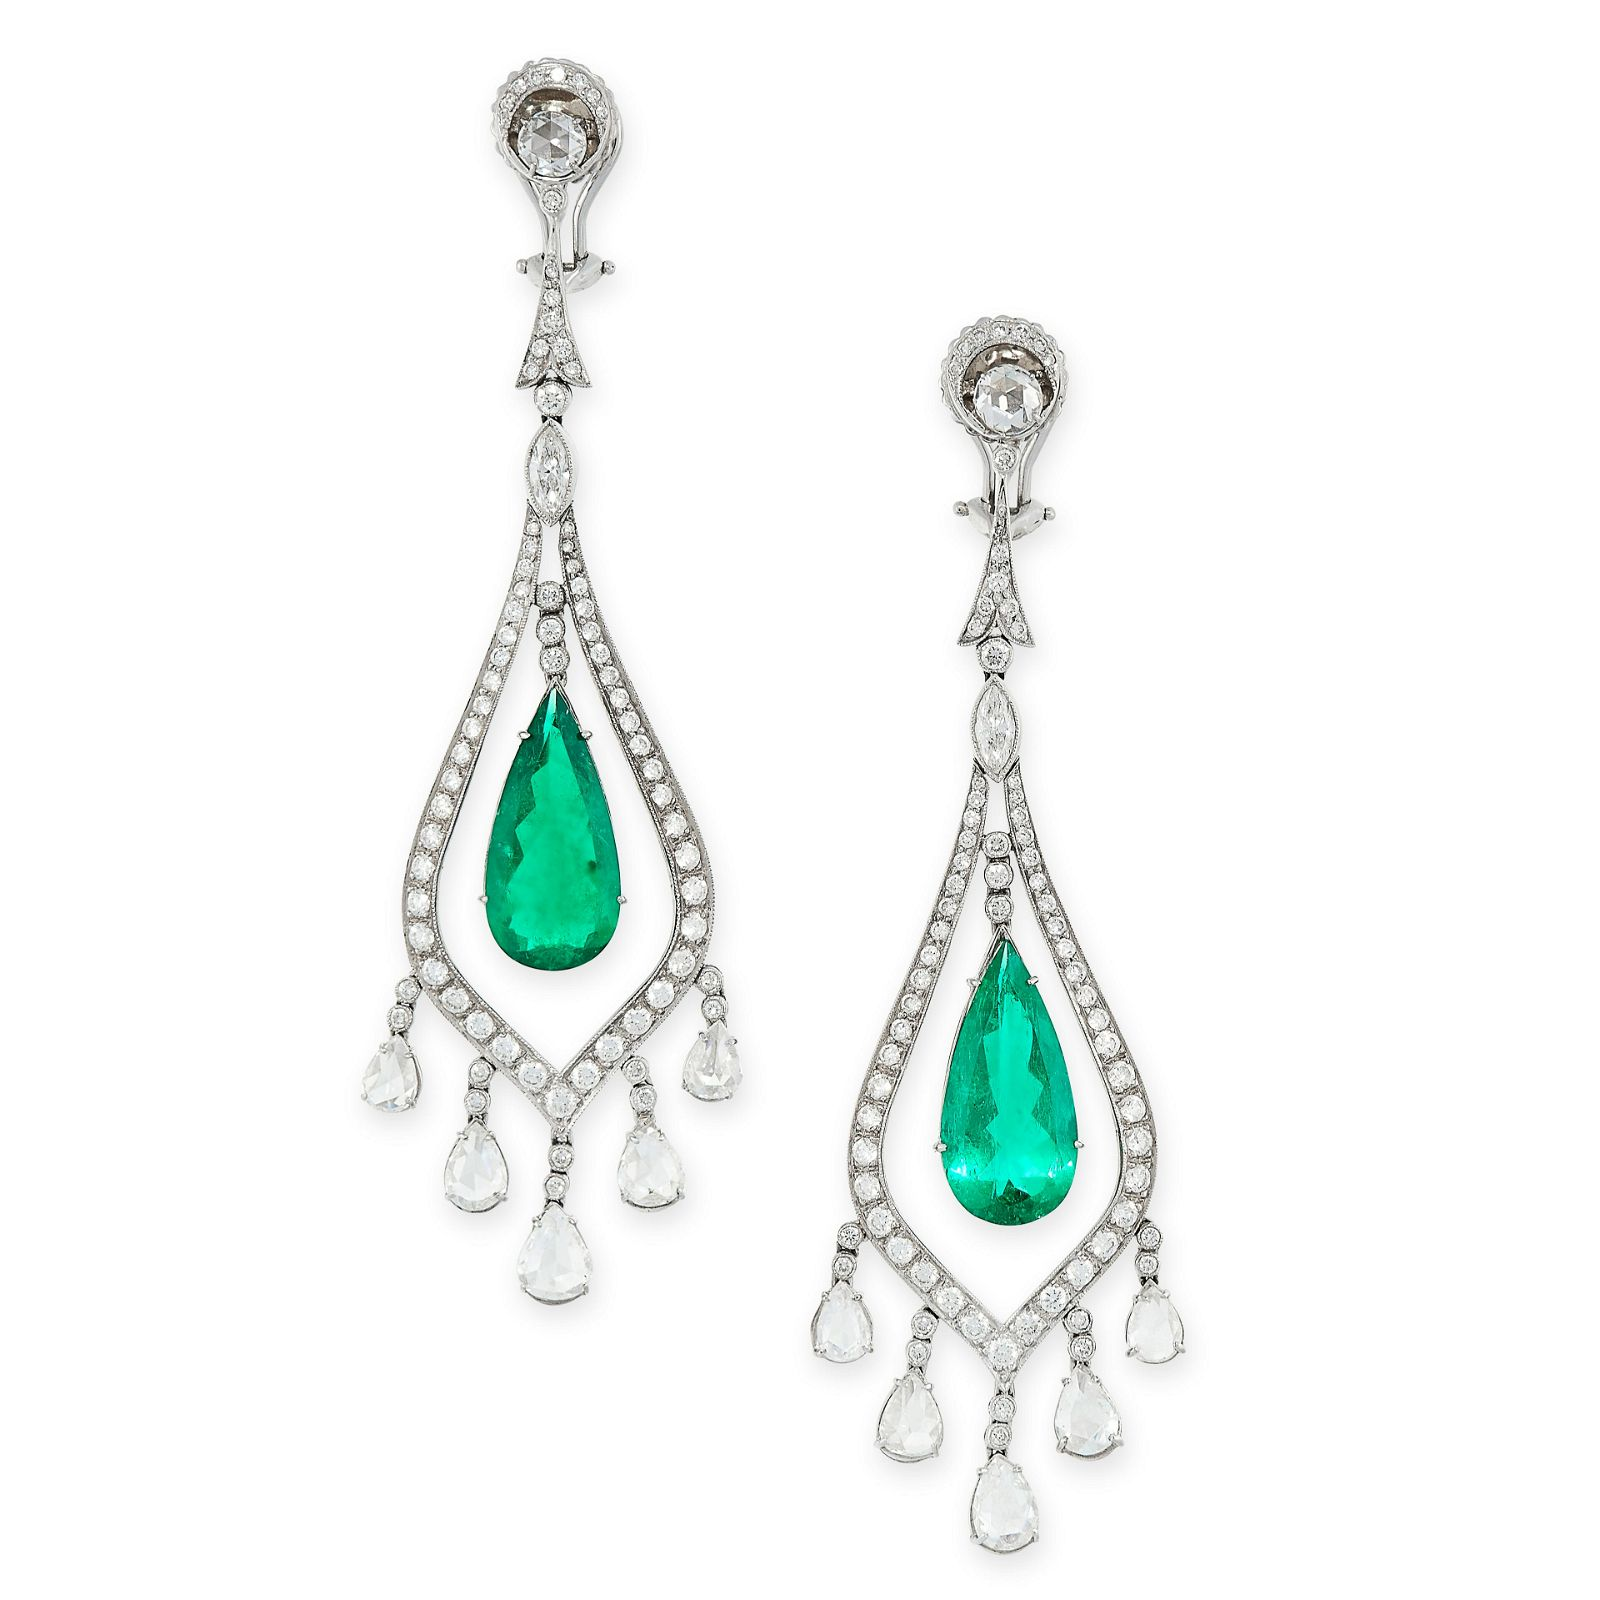 A PAIR OF COLOMBIAN EMERALD AND DIAMOND EARRINGS in